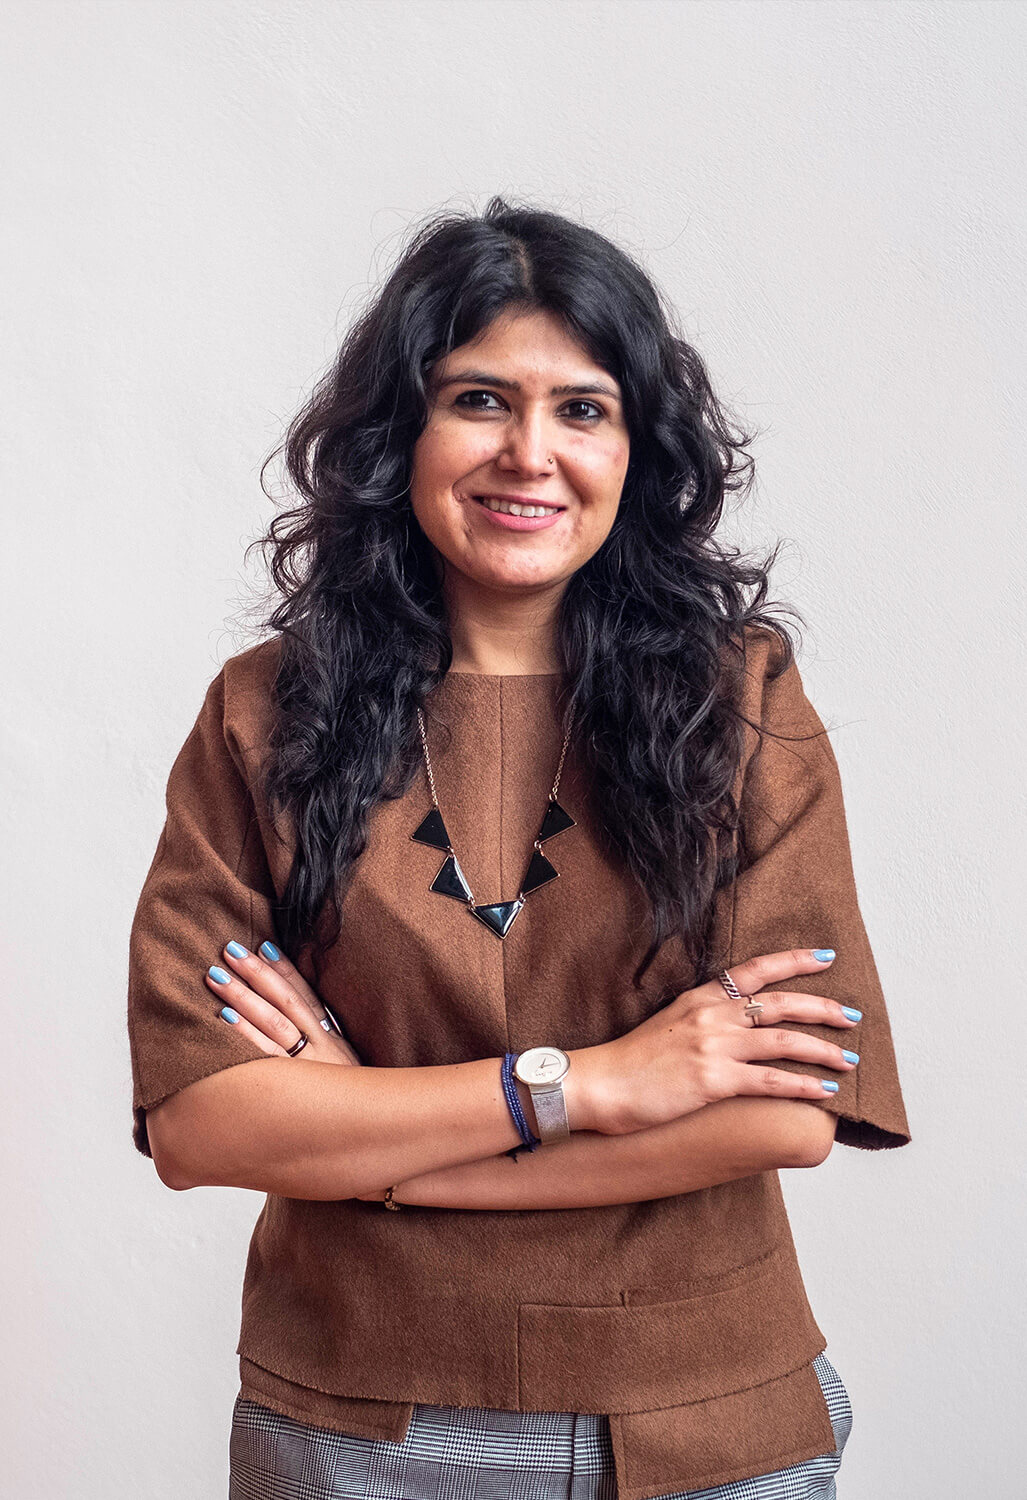 Natasha Ginwala, Artistic Director, Colomoboscope | Made in Sri Lanka: Curated by Colomboscope | STIRworld